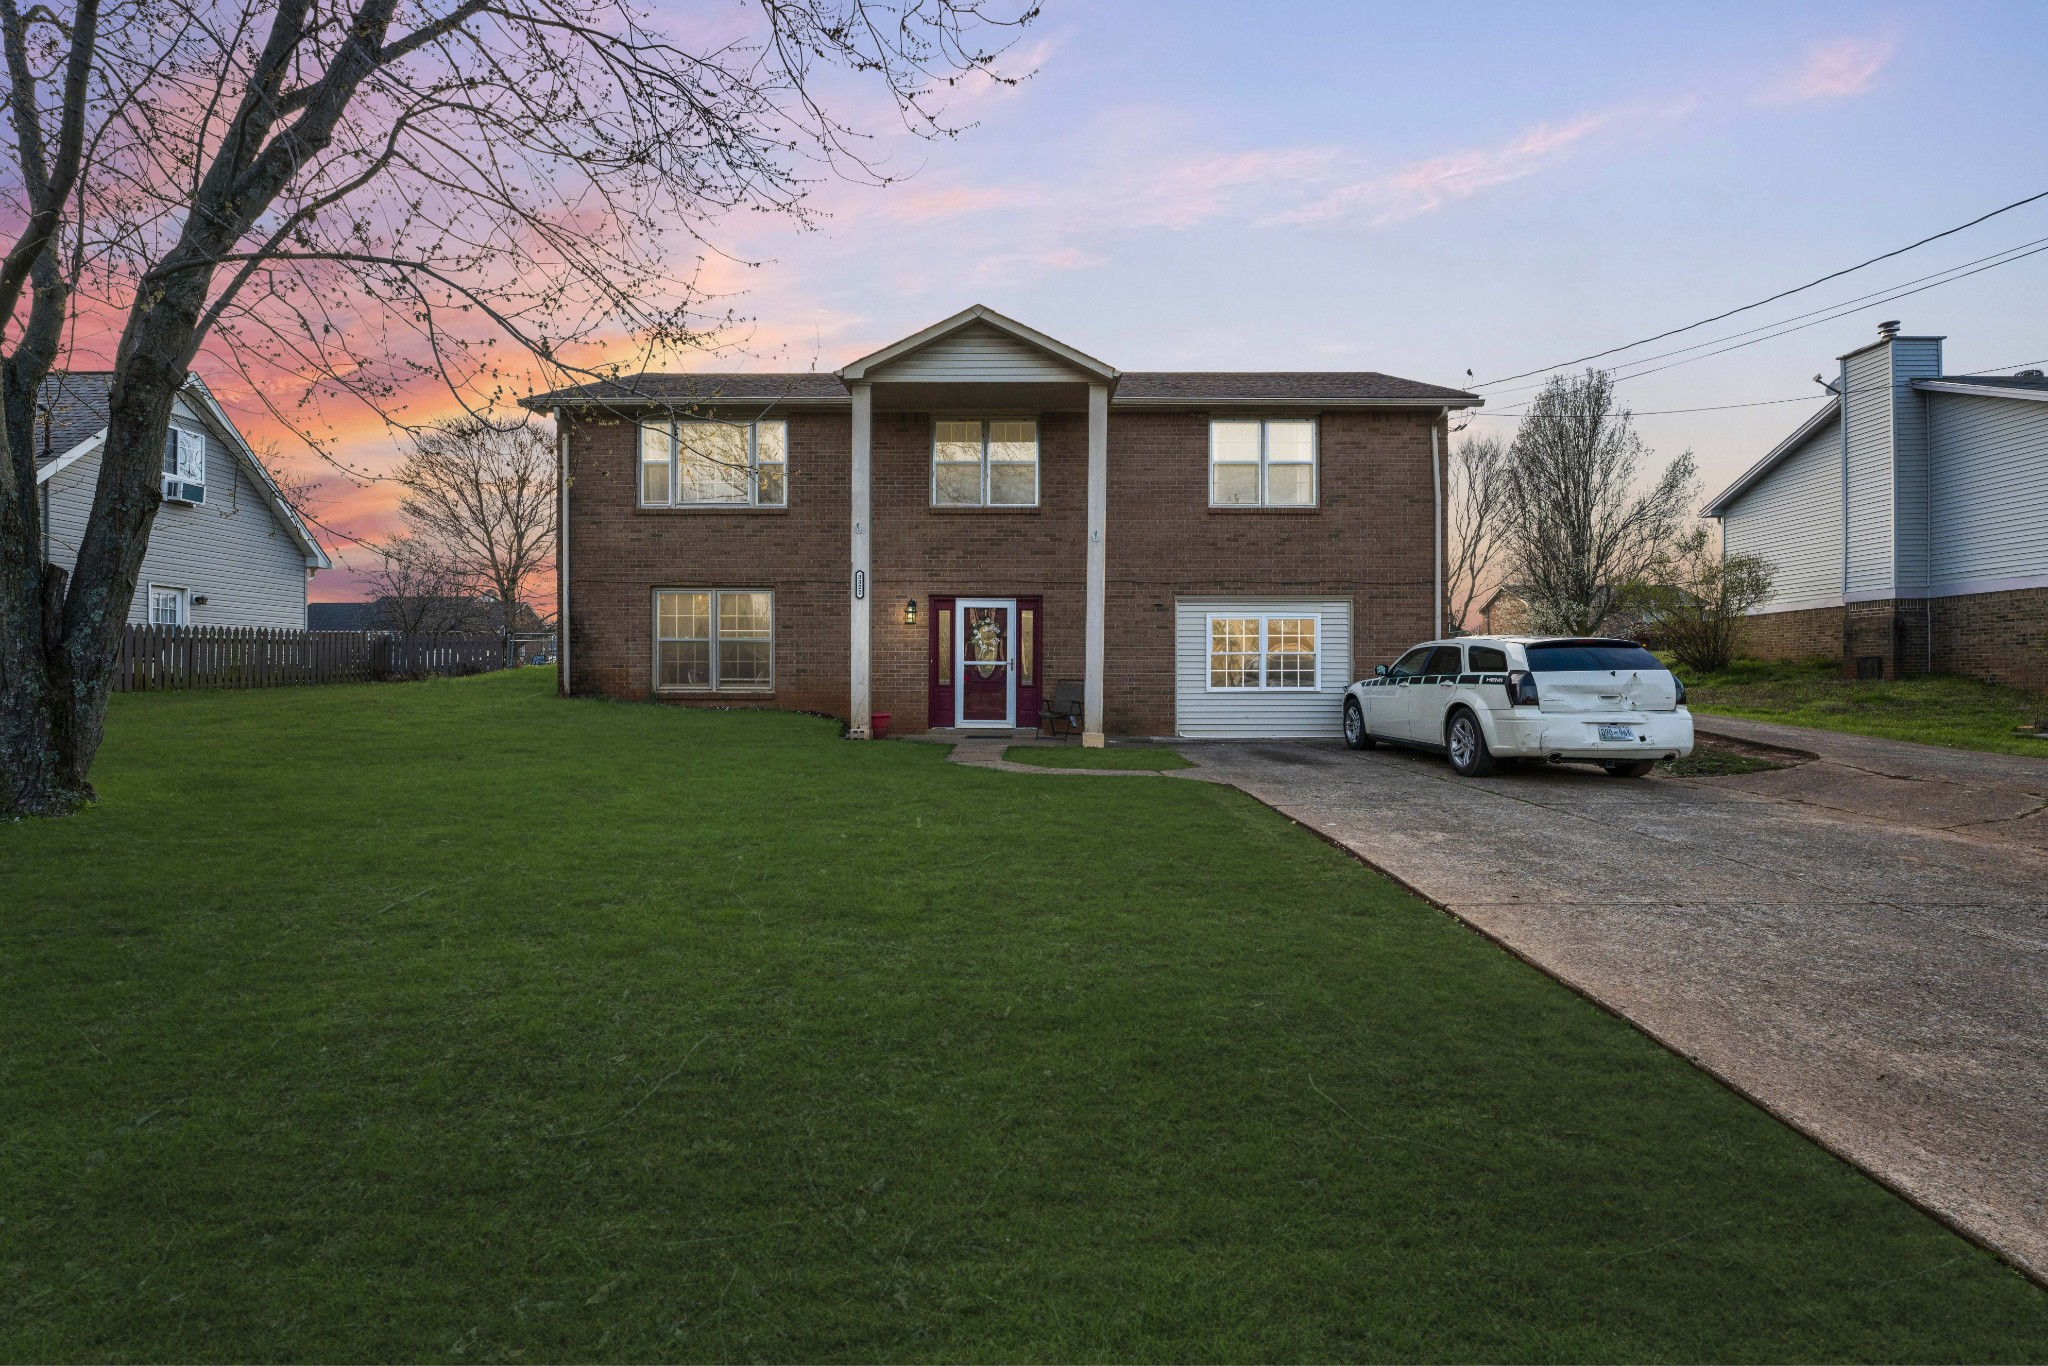 3322 Carrie Dr, Clarksville, TN 37042 - Clarksville, TN real estate listing